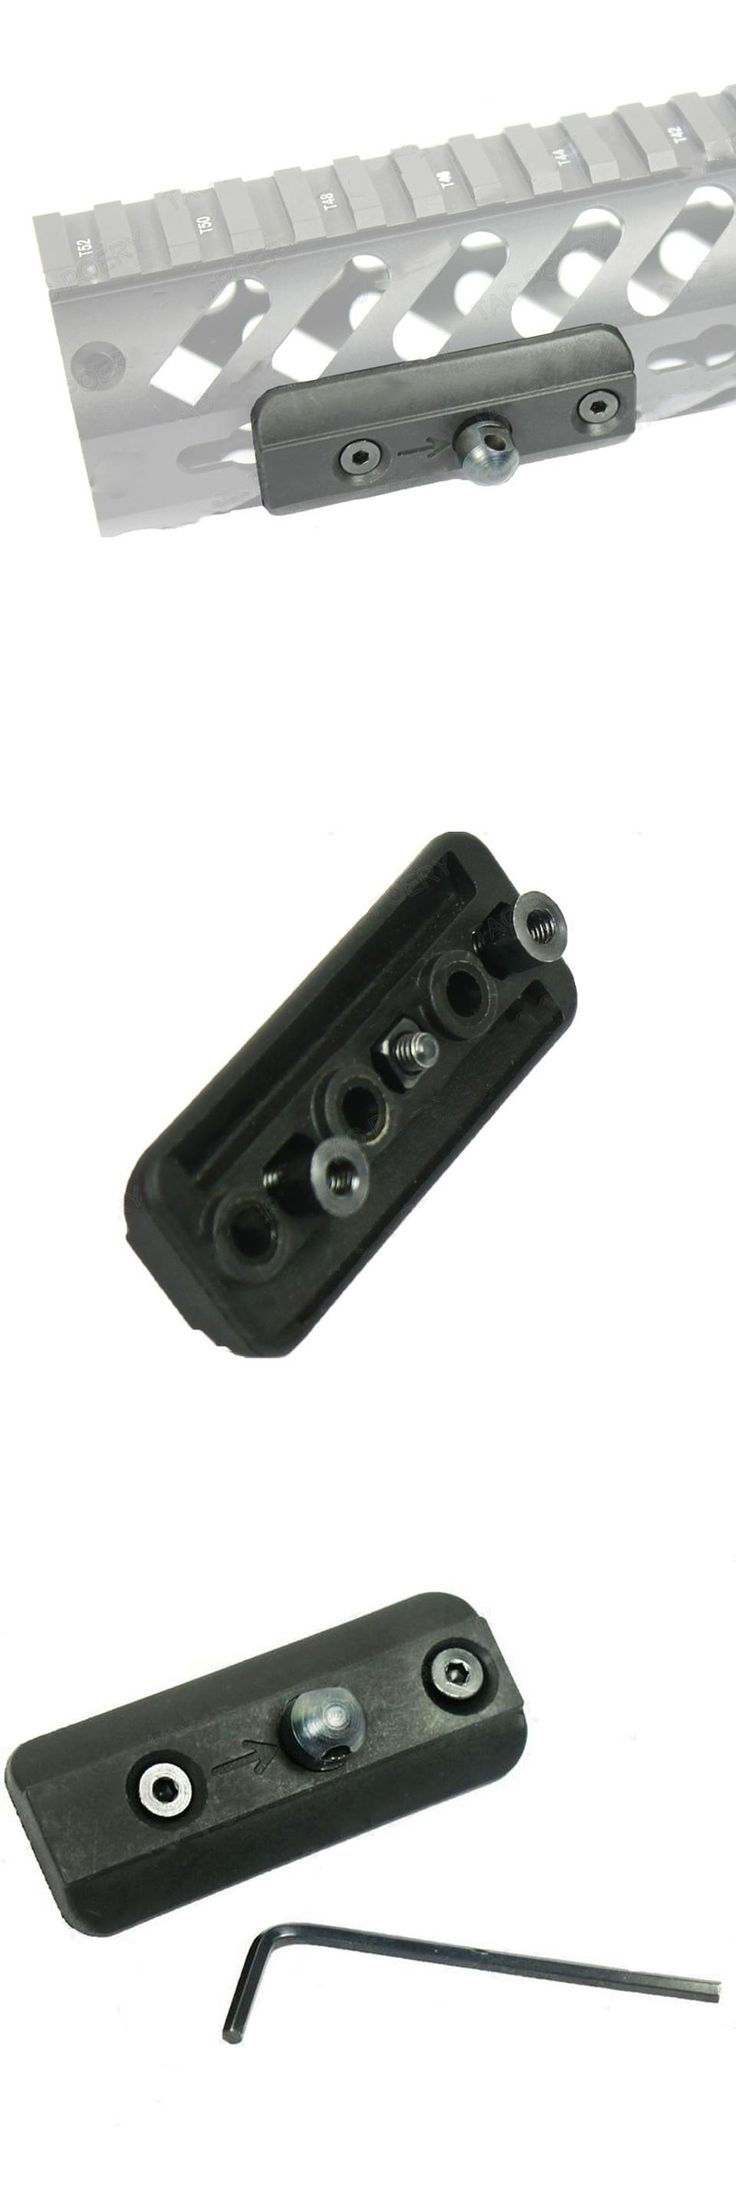 [Visit to Buy] 20mm Bipod Adapter for Keymod Rail System Fit Handguard Picatinny Rail Plastic Adapter for Hunting Accessories #Advertisement